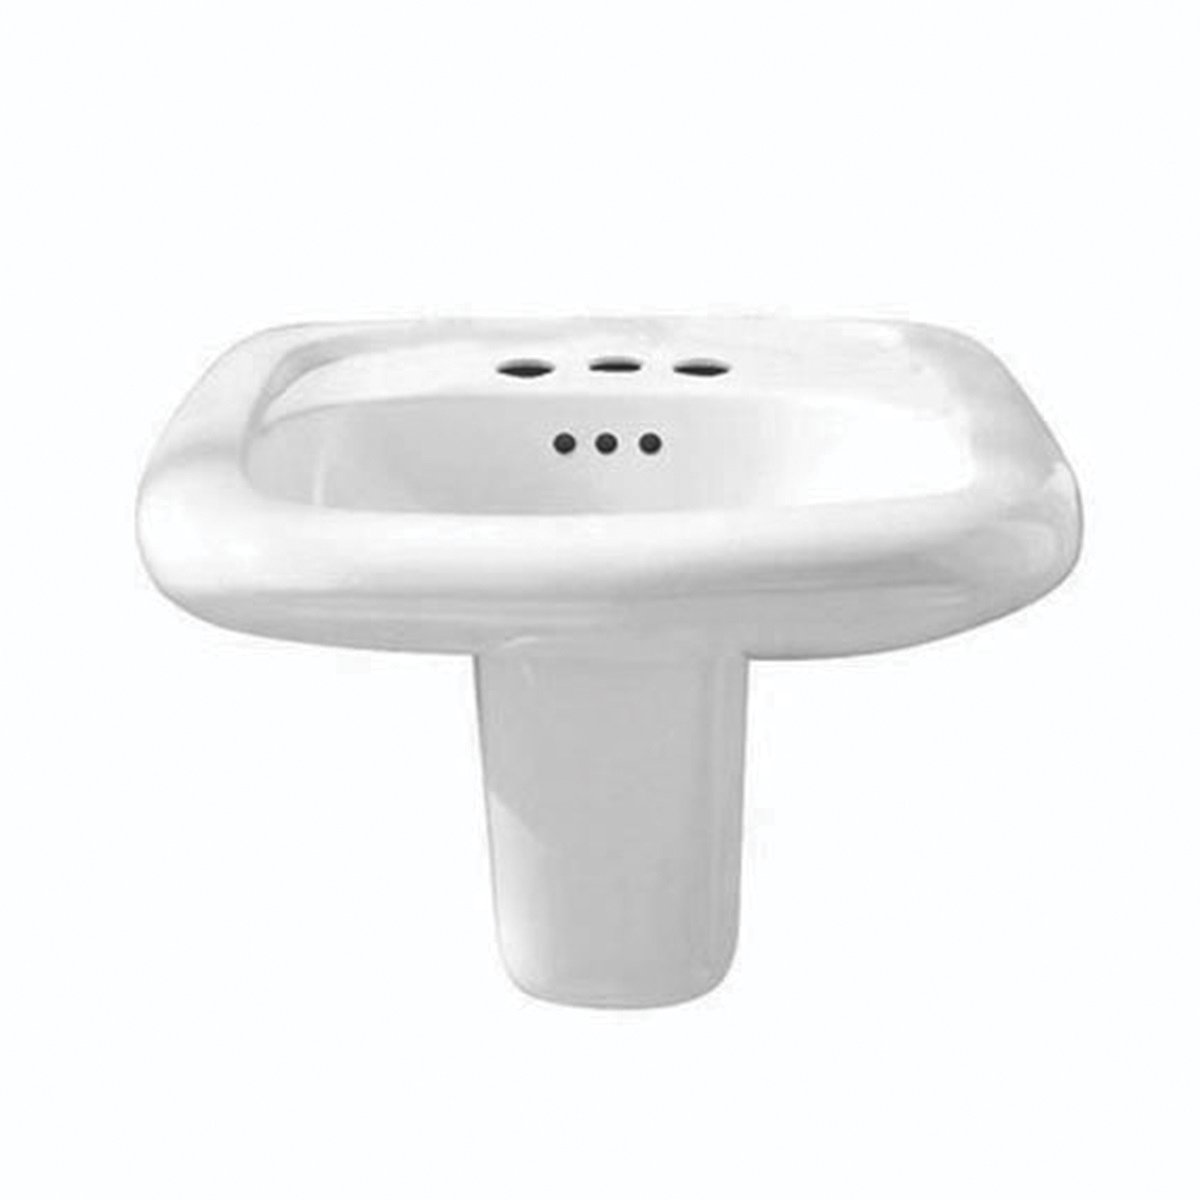 American Standard 0958.000.020 Murro Universal Design Lavatory Sink, Rectangular, 8 in Faucet Hole Spacing, 21-1/4 in W x 20-1/2 in D